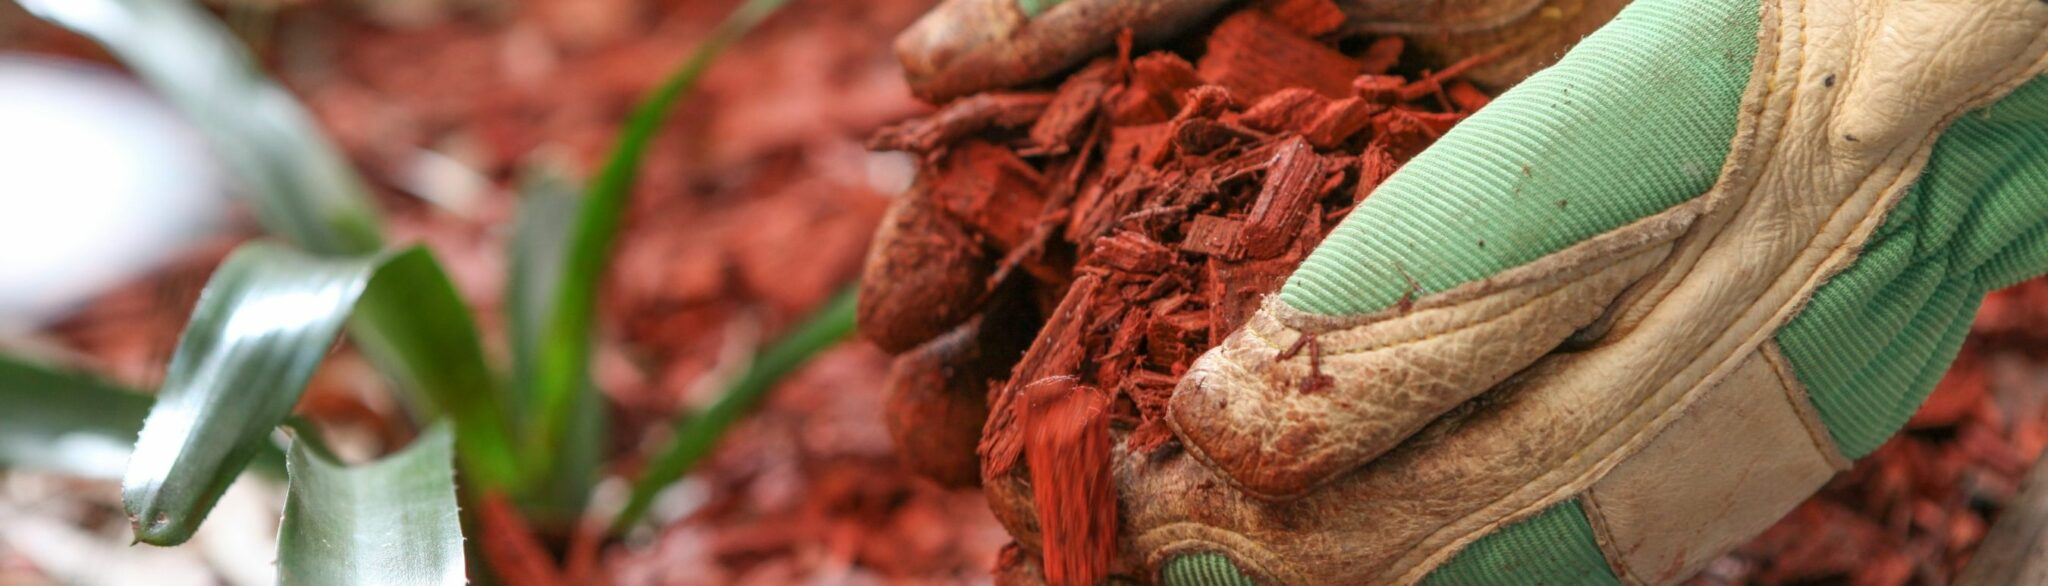 Bloved Hands Scooping Red Mulch